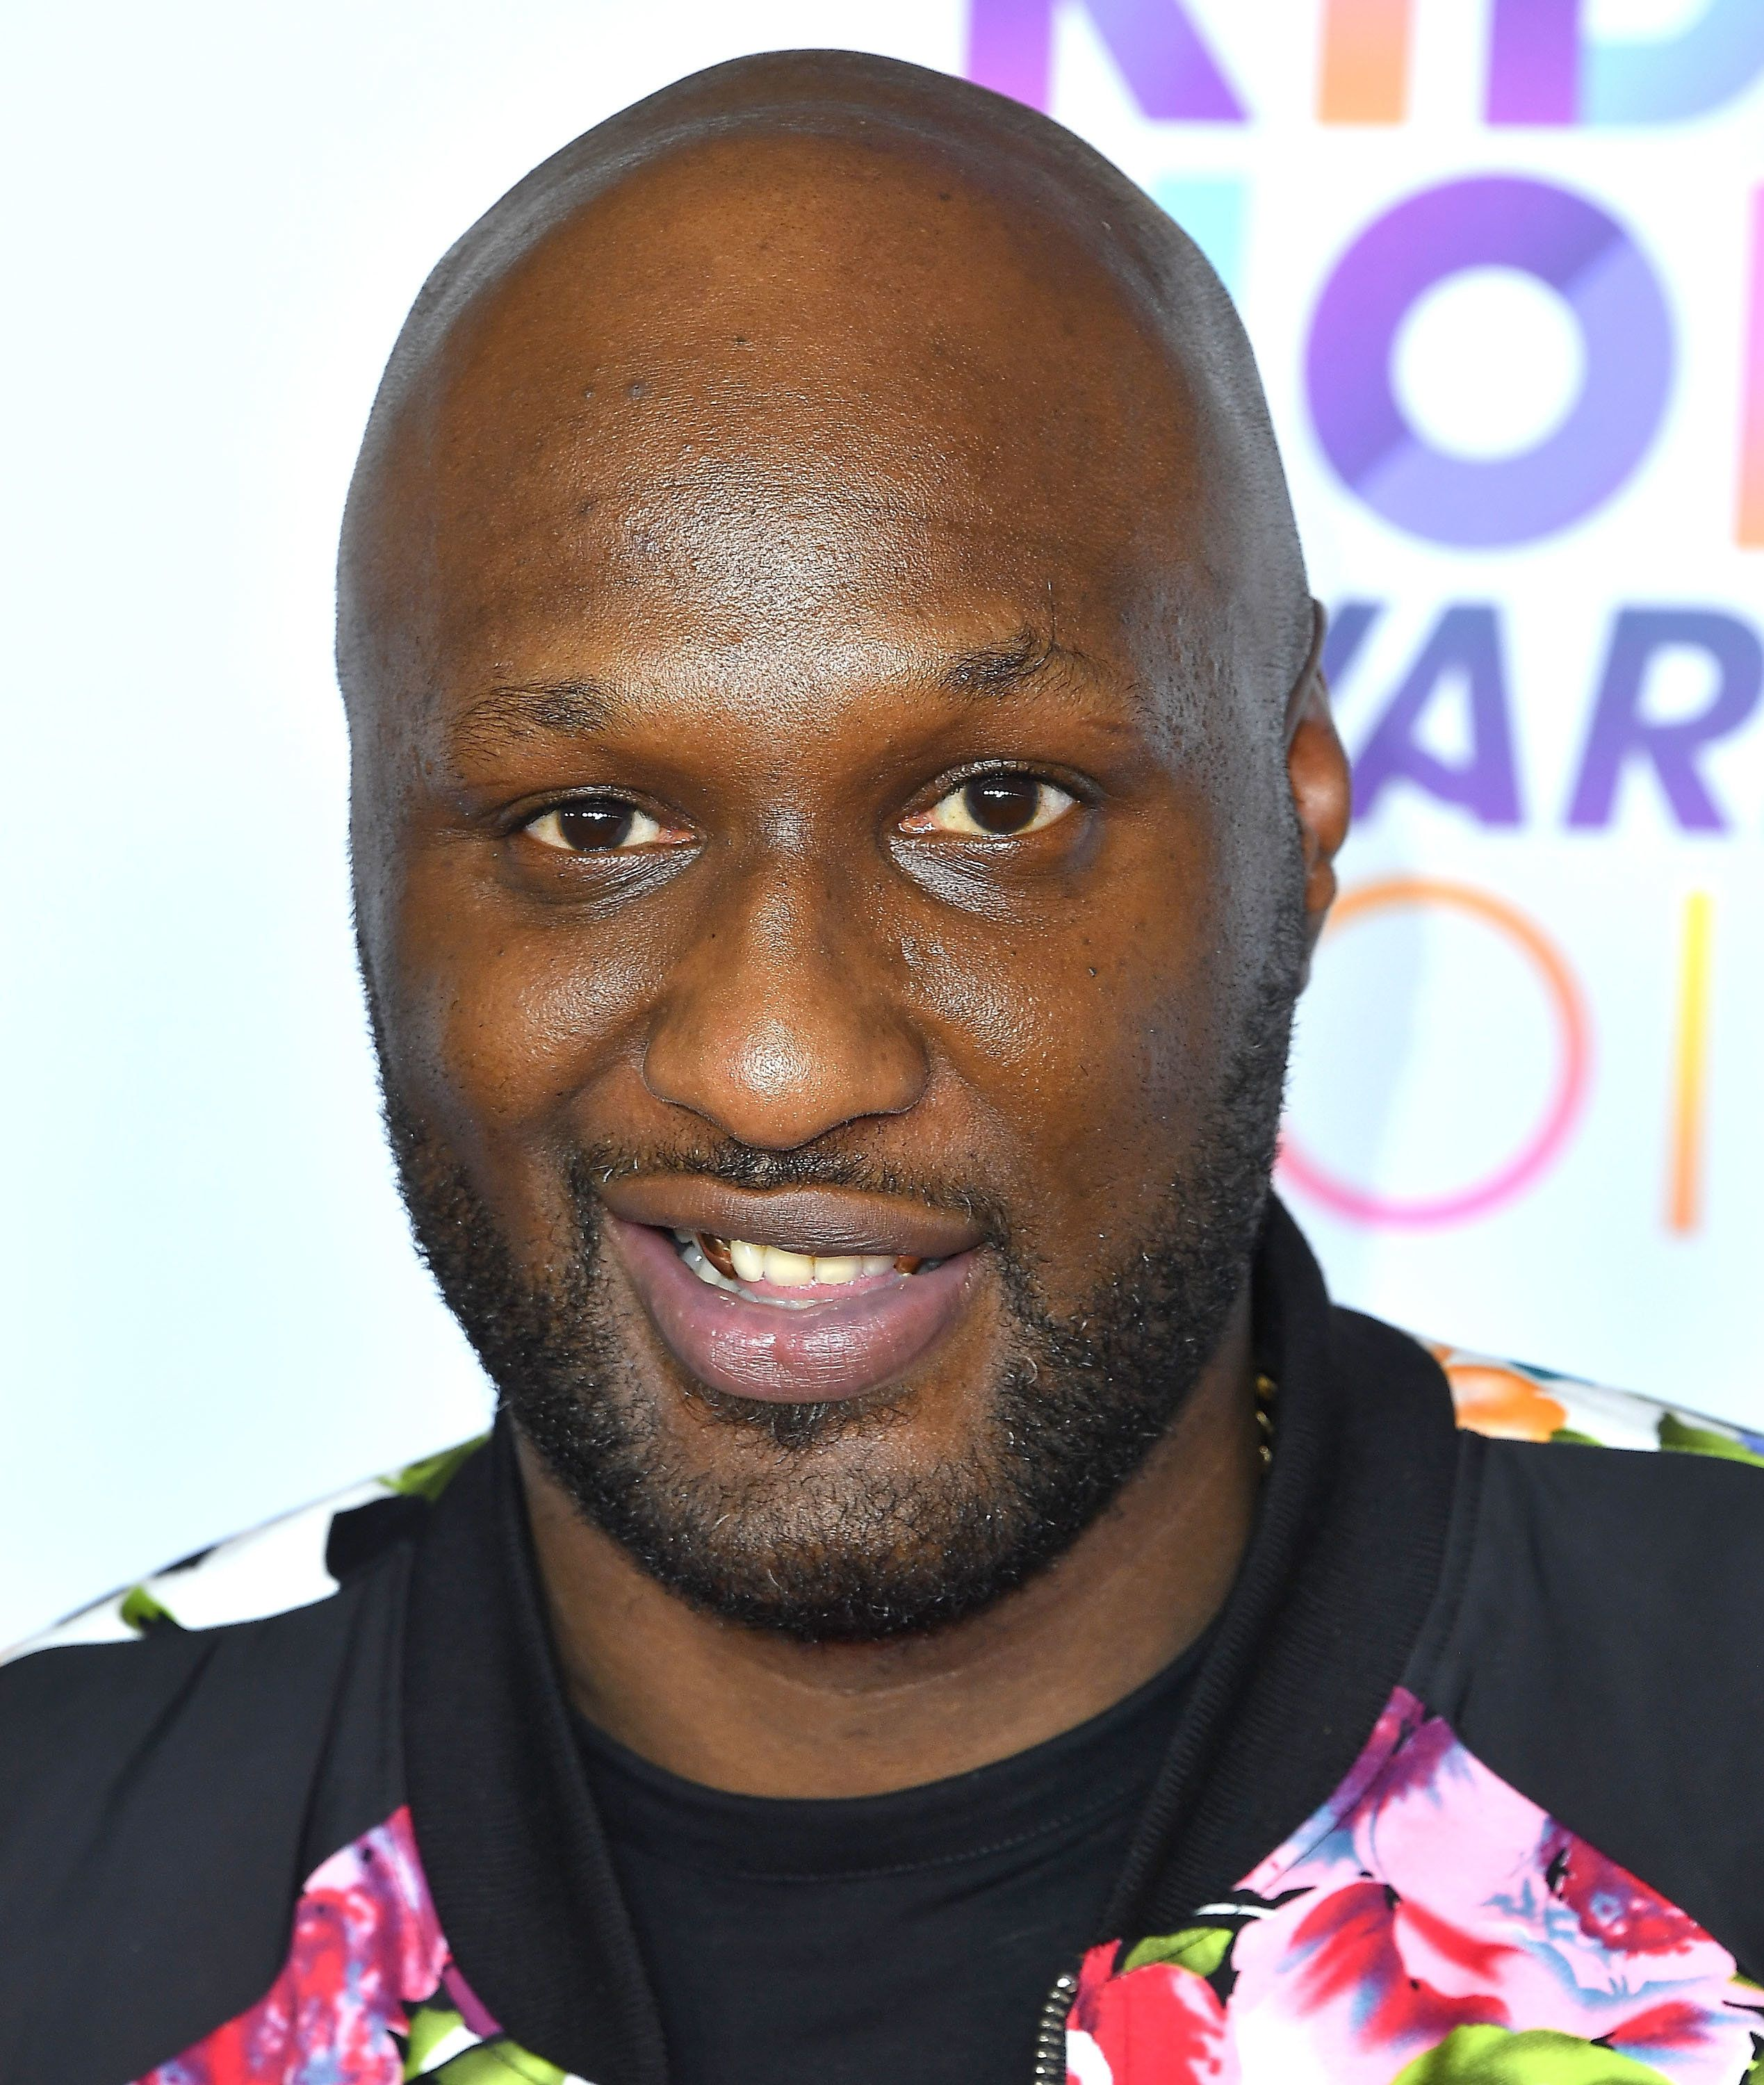 LOS ANGELES, CA - MARCH 11:  Lamar Odom arrives at the Nickelodeon's 2017 Kids' Choice Awards at USC Galen Center on March 11, 2017 in Los Angeles, California.  (Photo by Steve Granitz/WireImage)